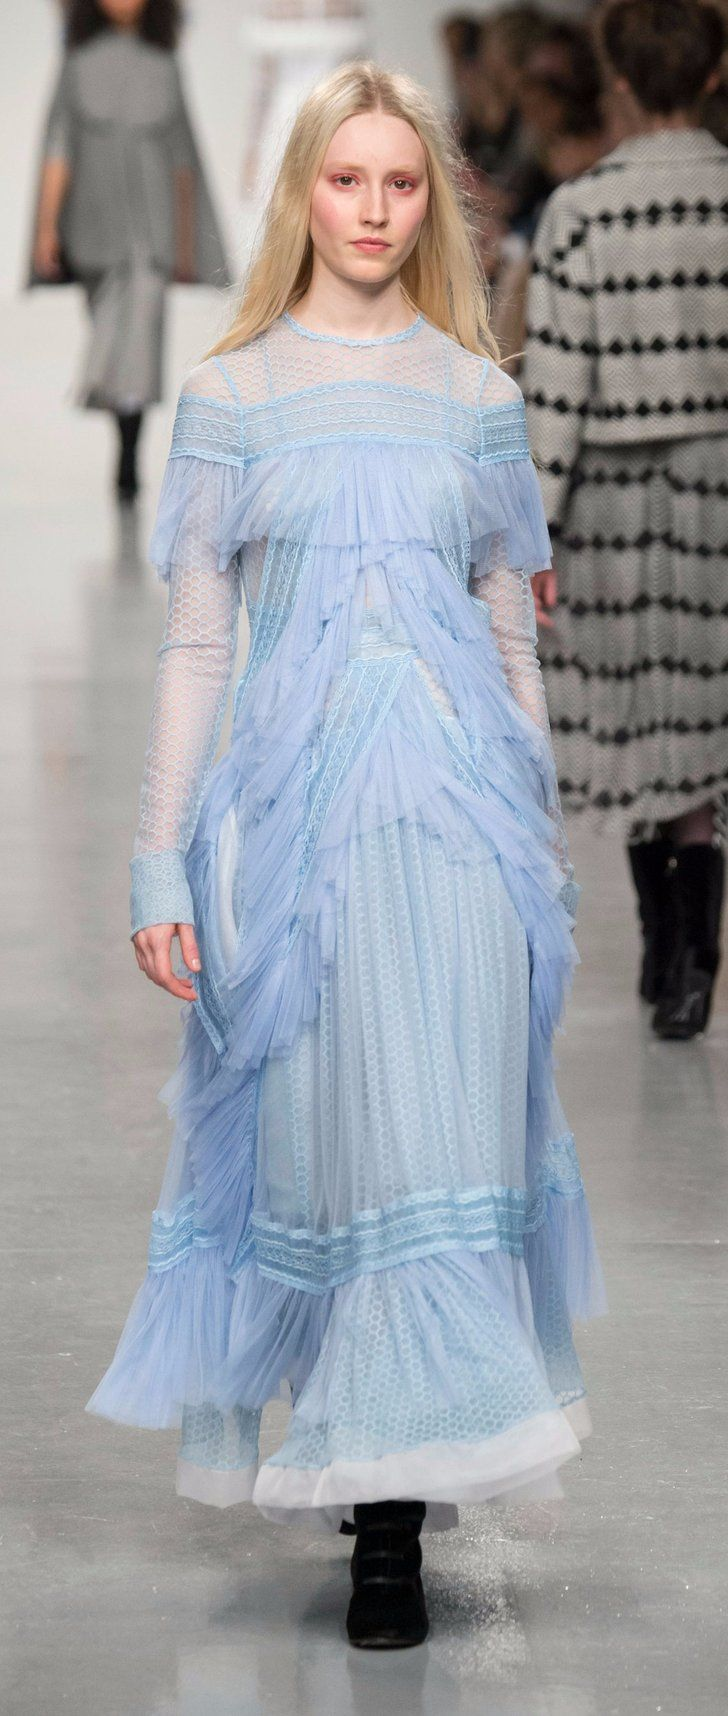 Bora Aksu's London Fashion Week Show Paid Homage to a Very Famous Suffragette